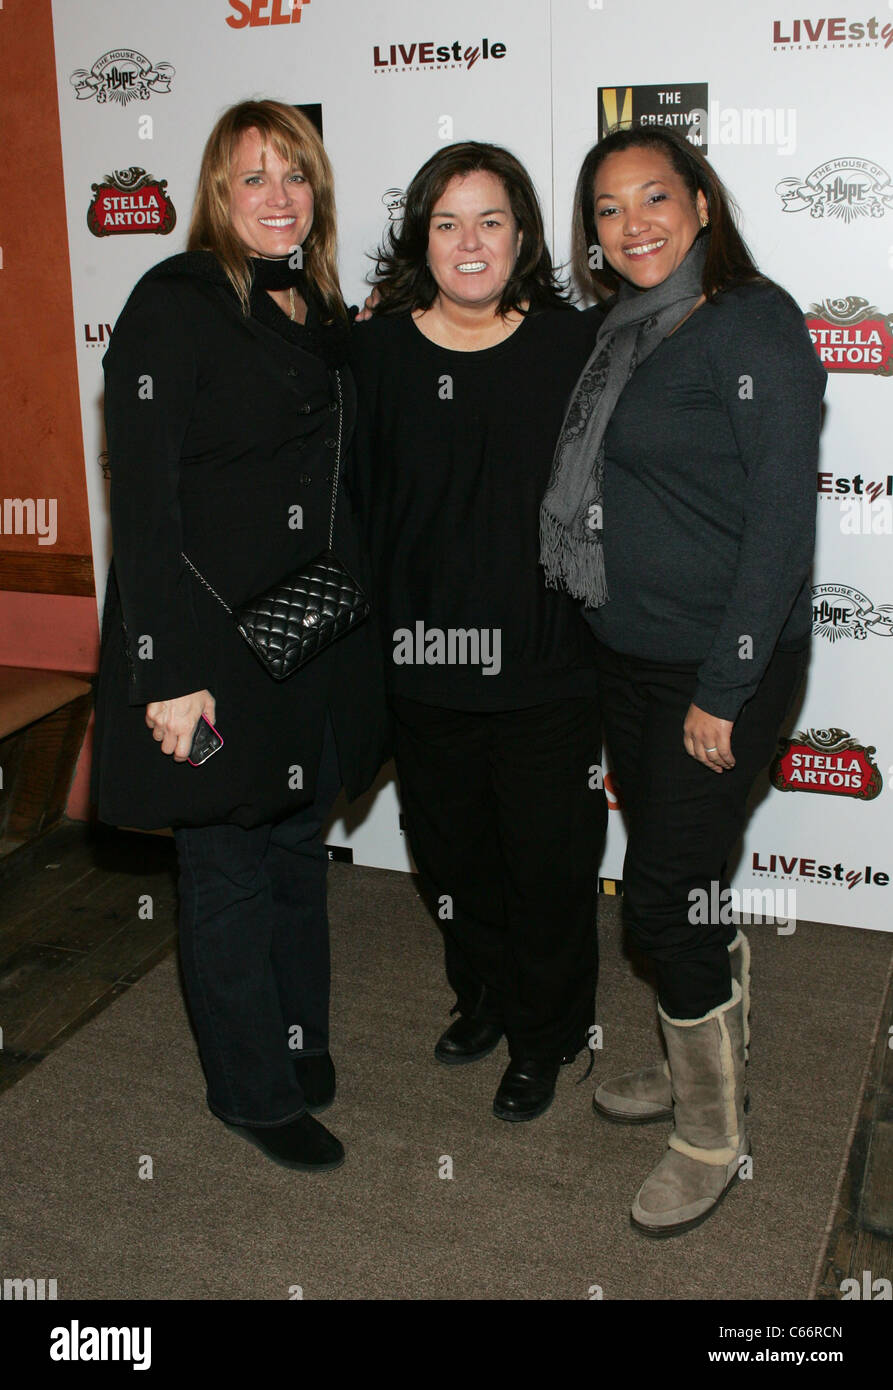 Lisa Erspamer (Chief Creative Officer of OWN), Rosie O'Donnell, Christina Norman (CEO of OWN) at arrivals for - Stock Image